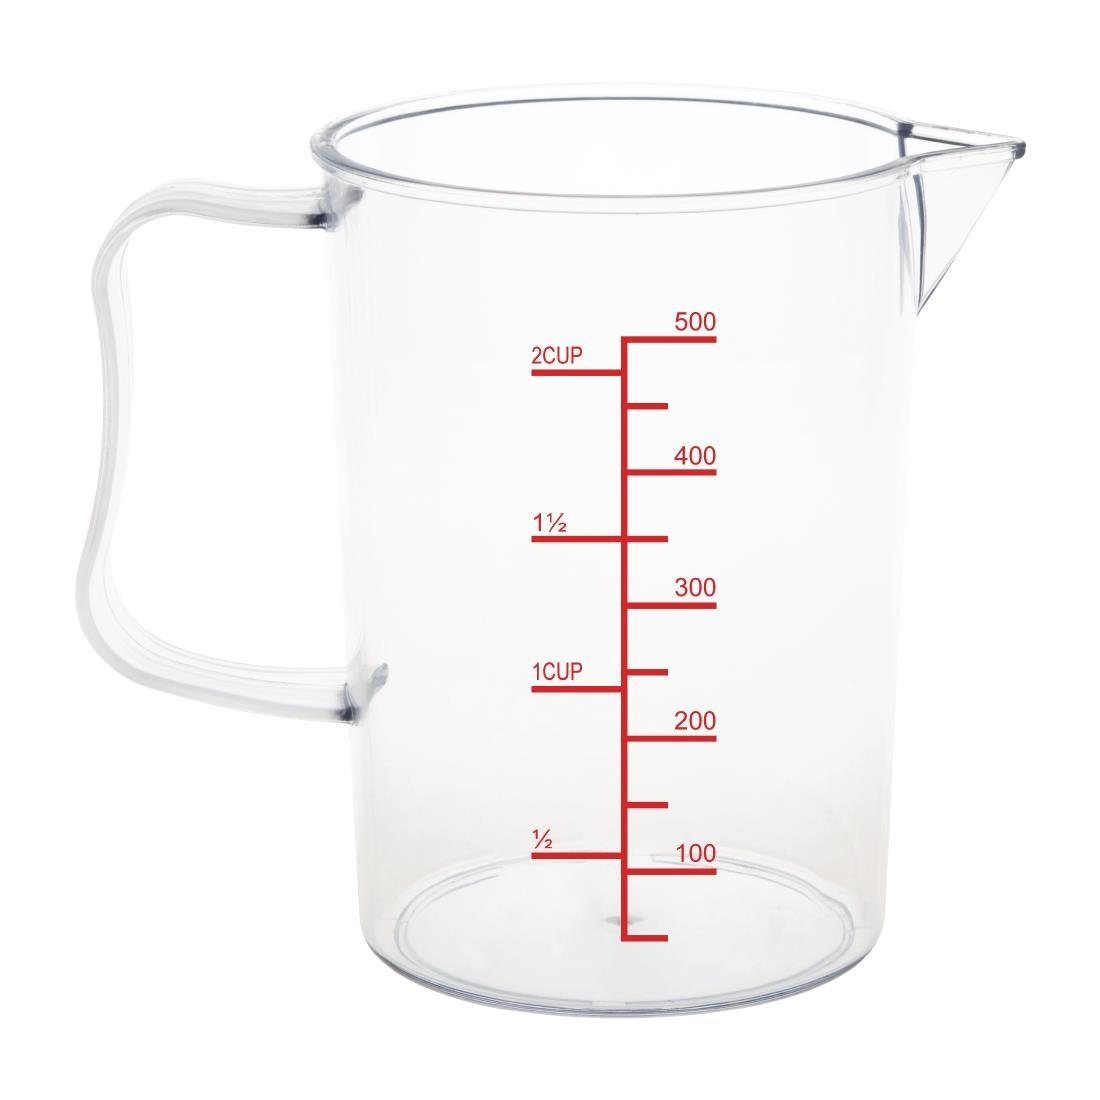 CG970 - Vogue Polycarbonate Measuring Jug 500ml - Each - CG970